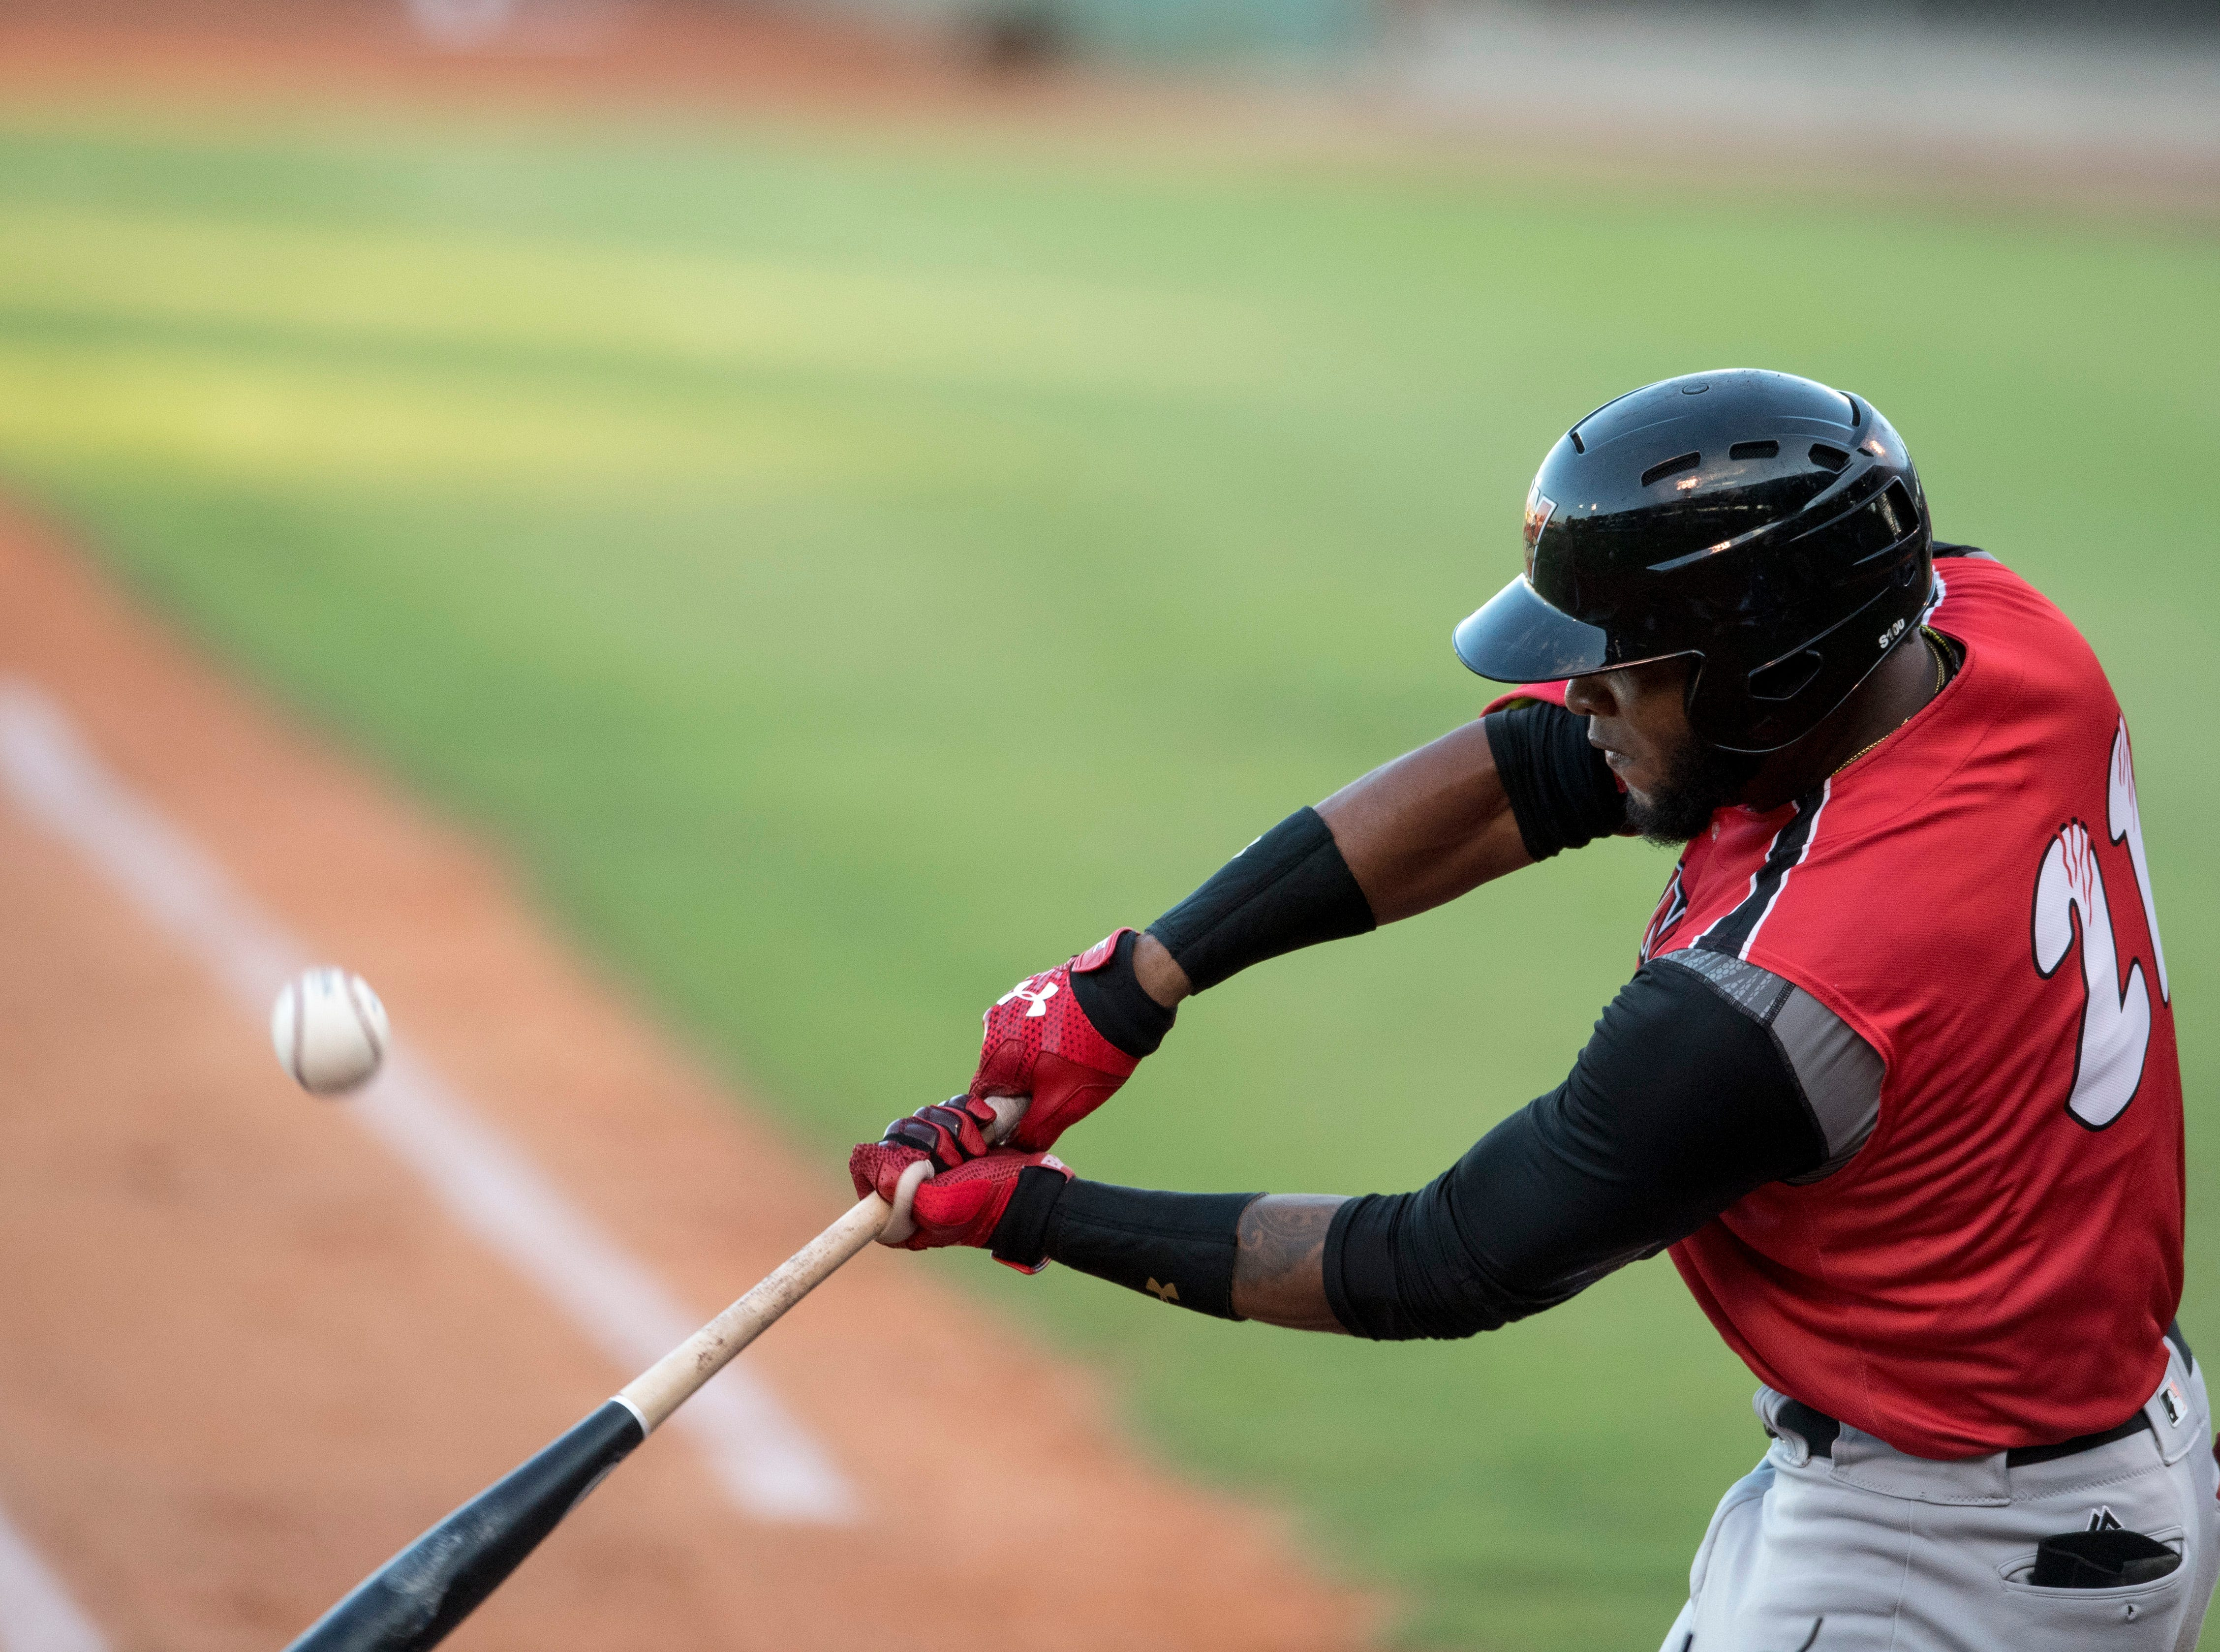 Washington's Reydel Medina (21) swings at the ball during game one of the Frontier League Division Series at Bosse Field against the Evansville Otters Tuesday, September 4, 2018.